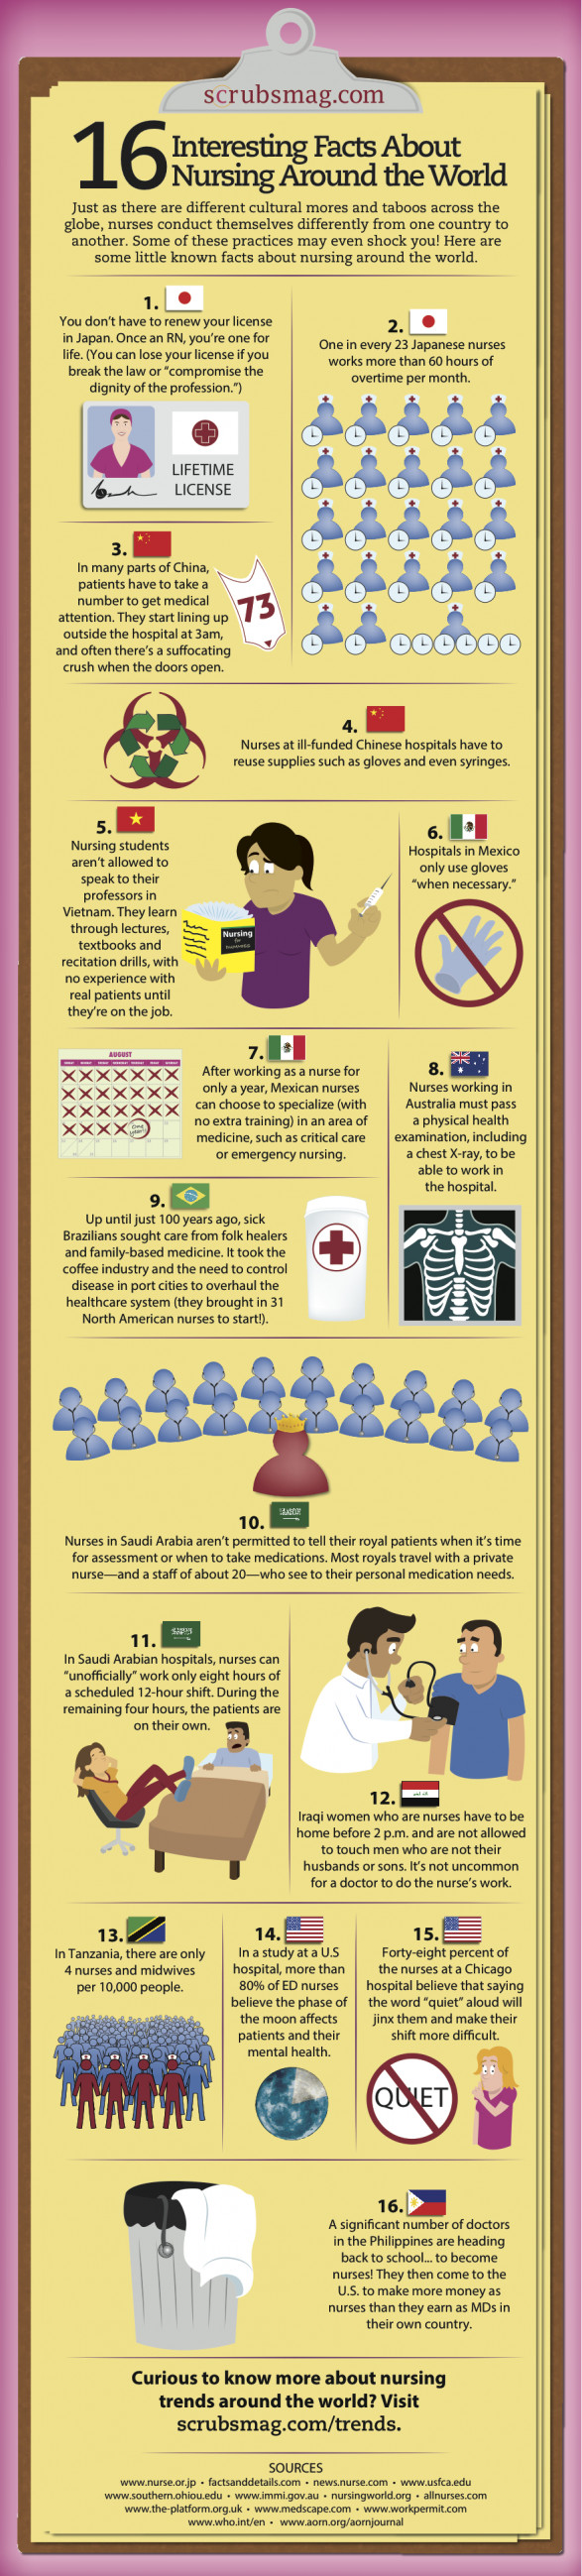 16 Interesting Facts About Nursing Around the World